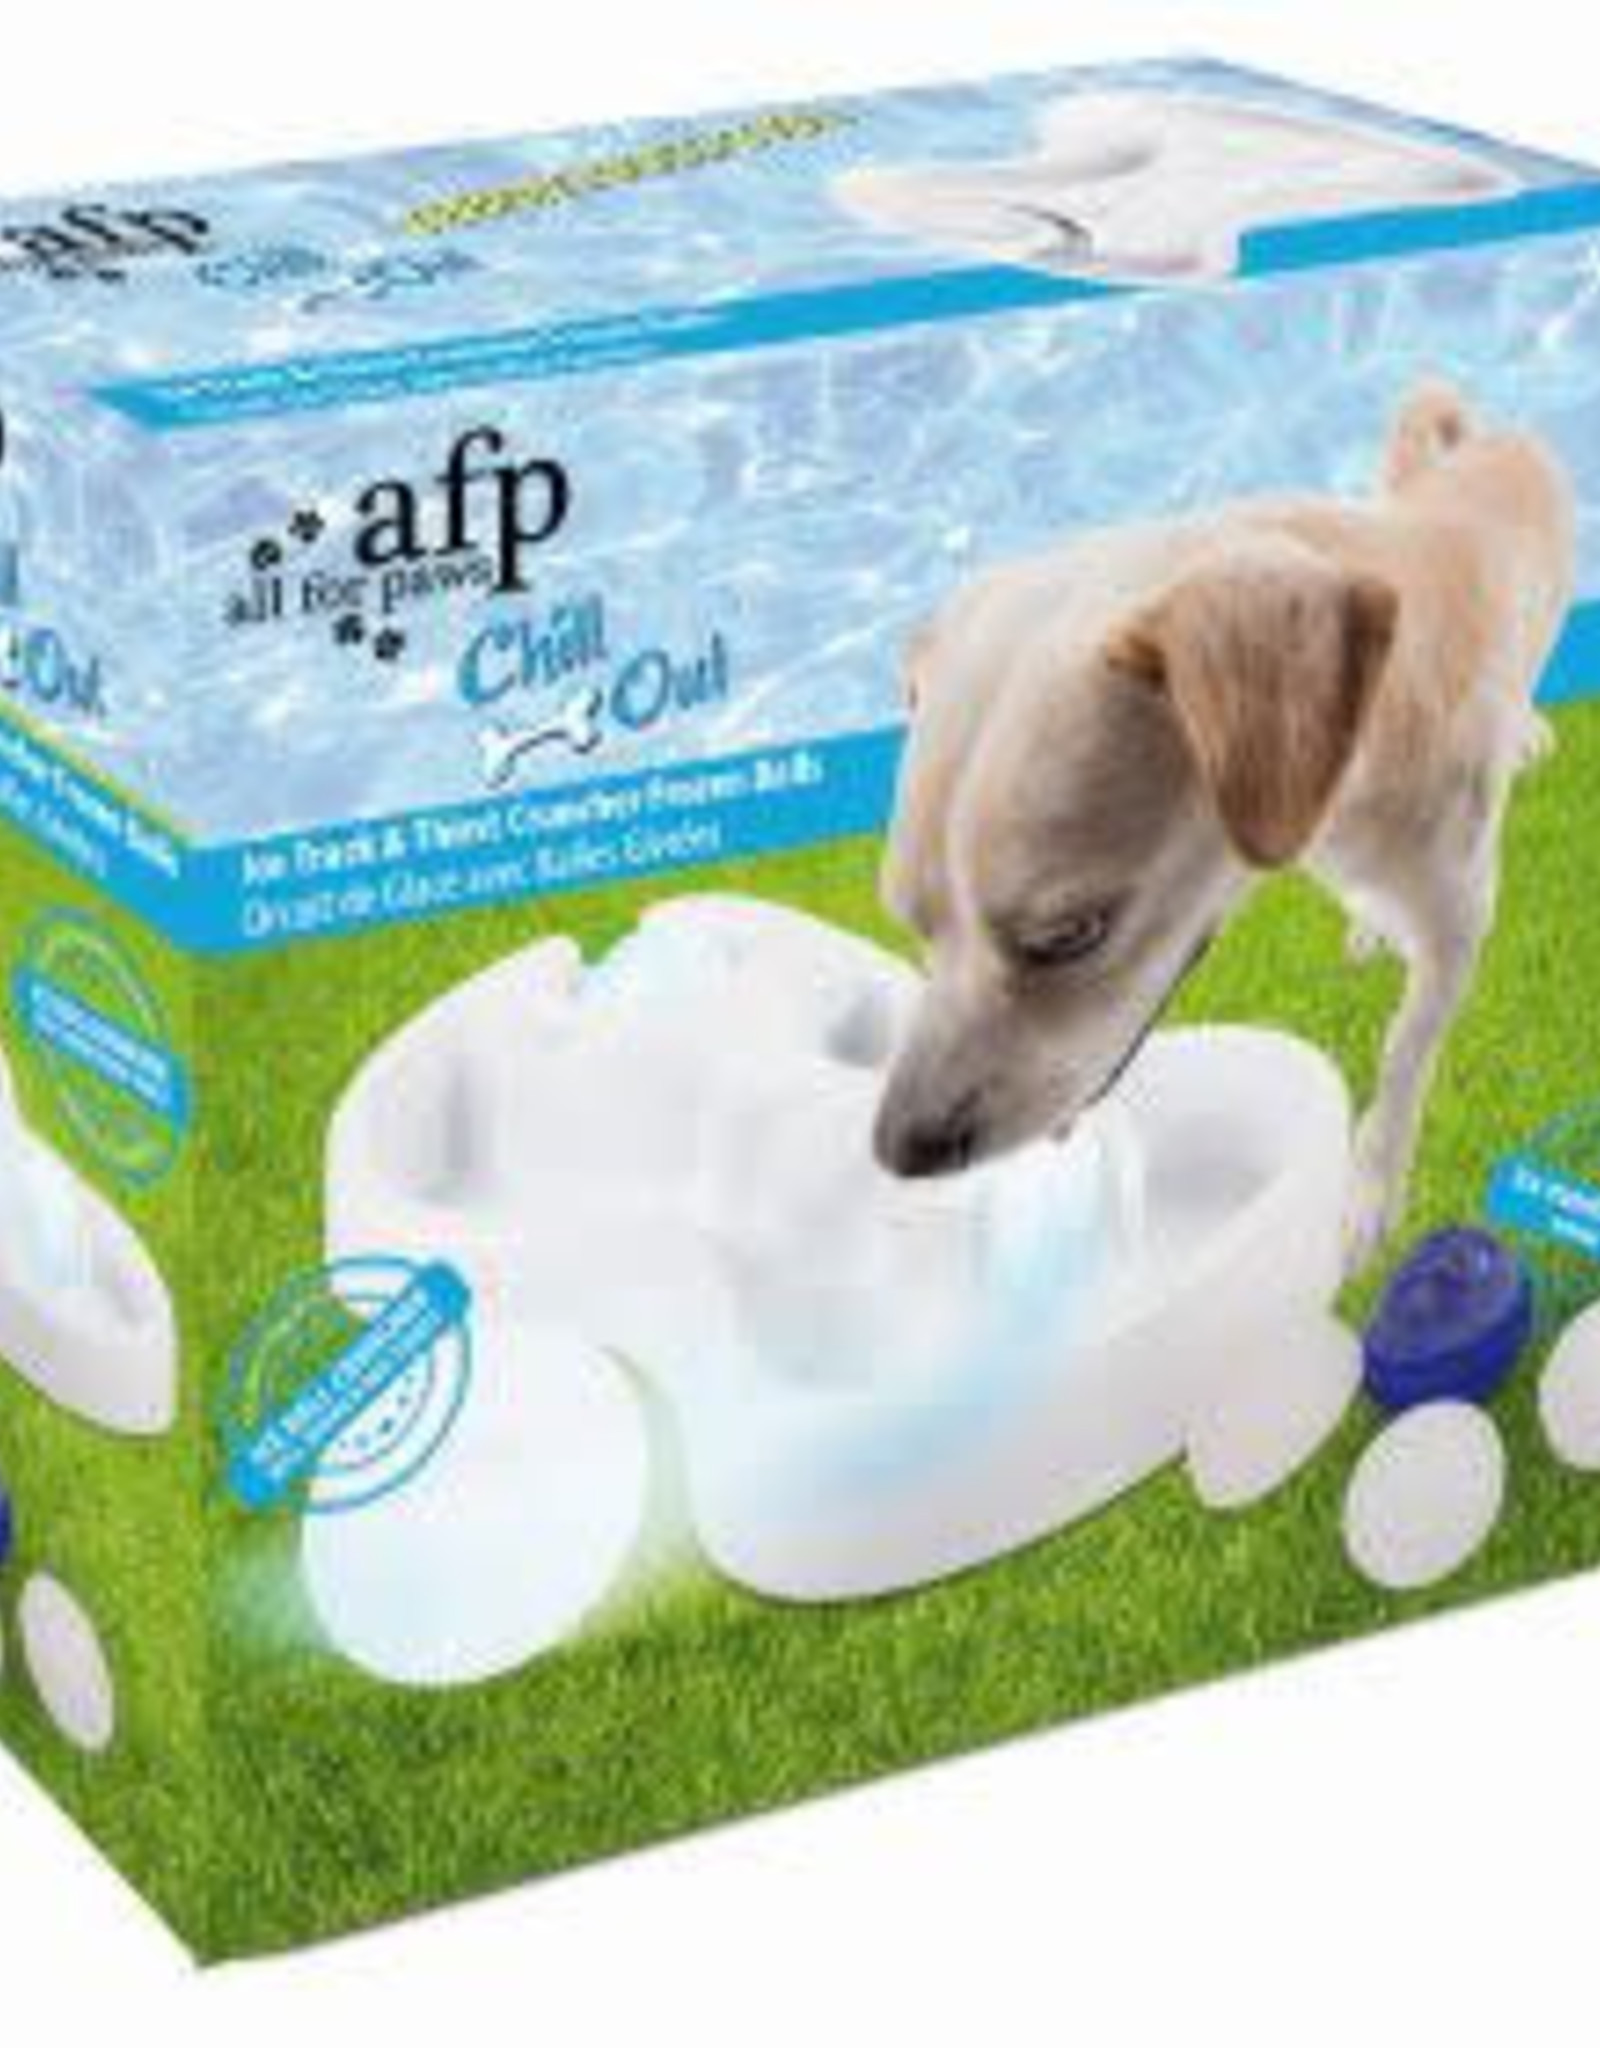 All For Paws Chill Out Ice Track Thirst Cruncher 47cm